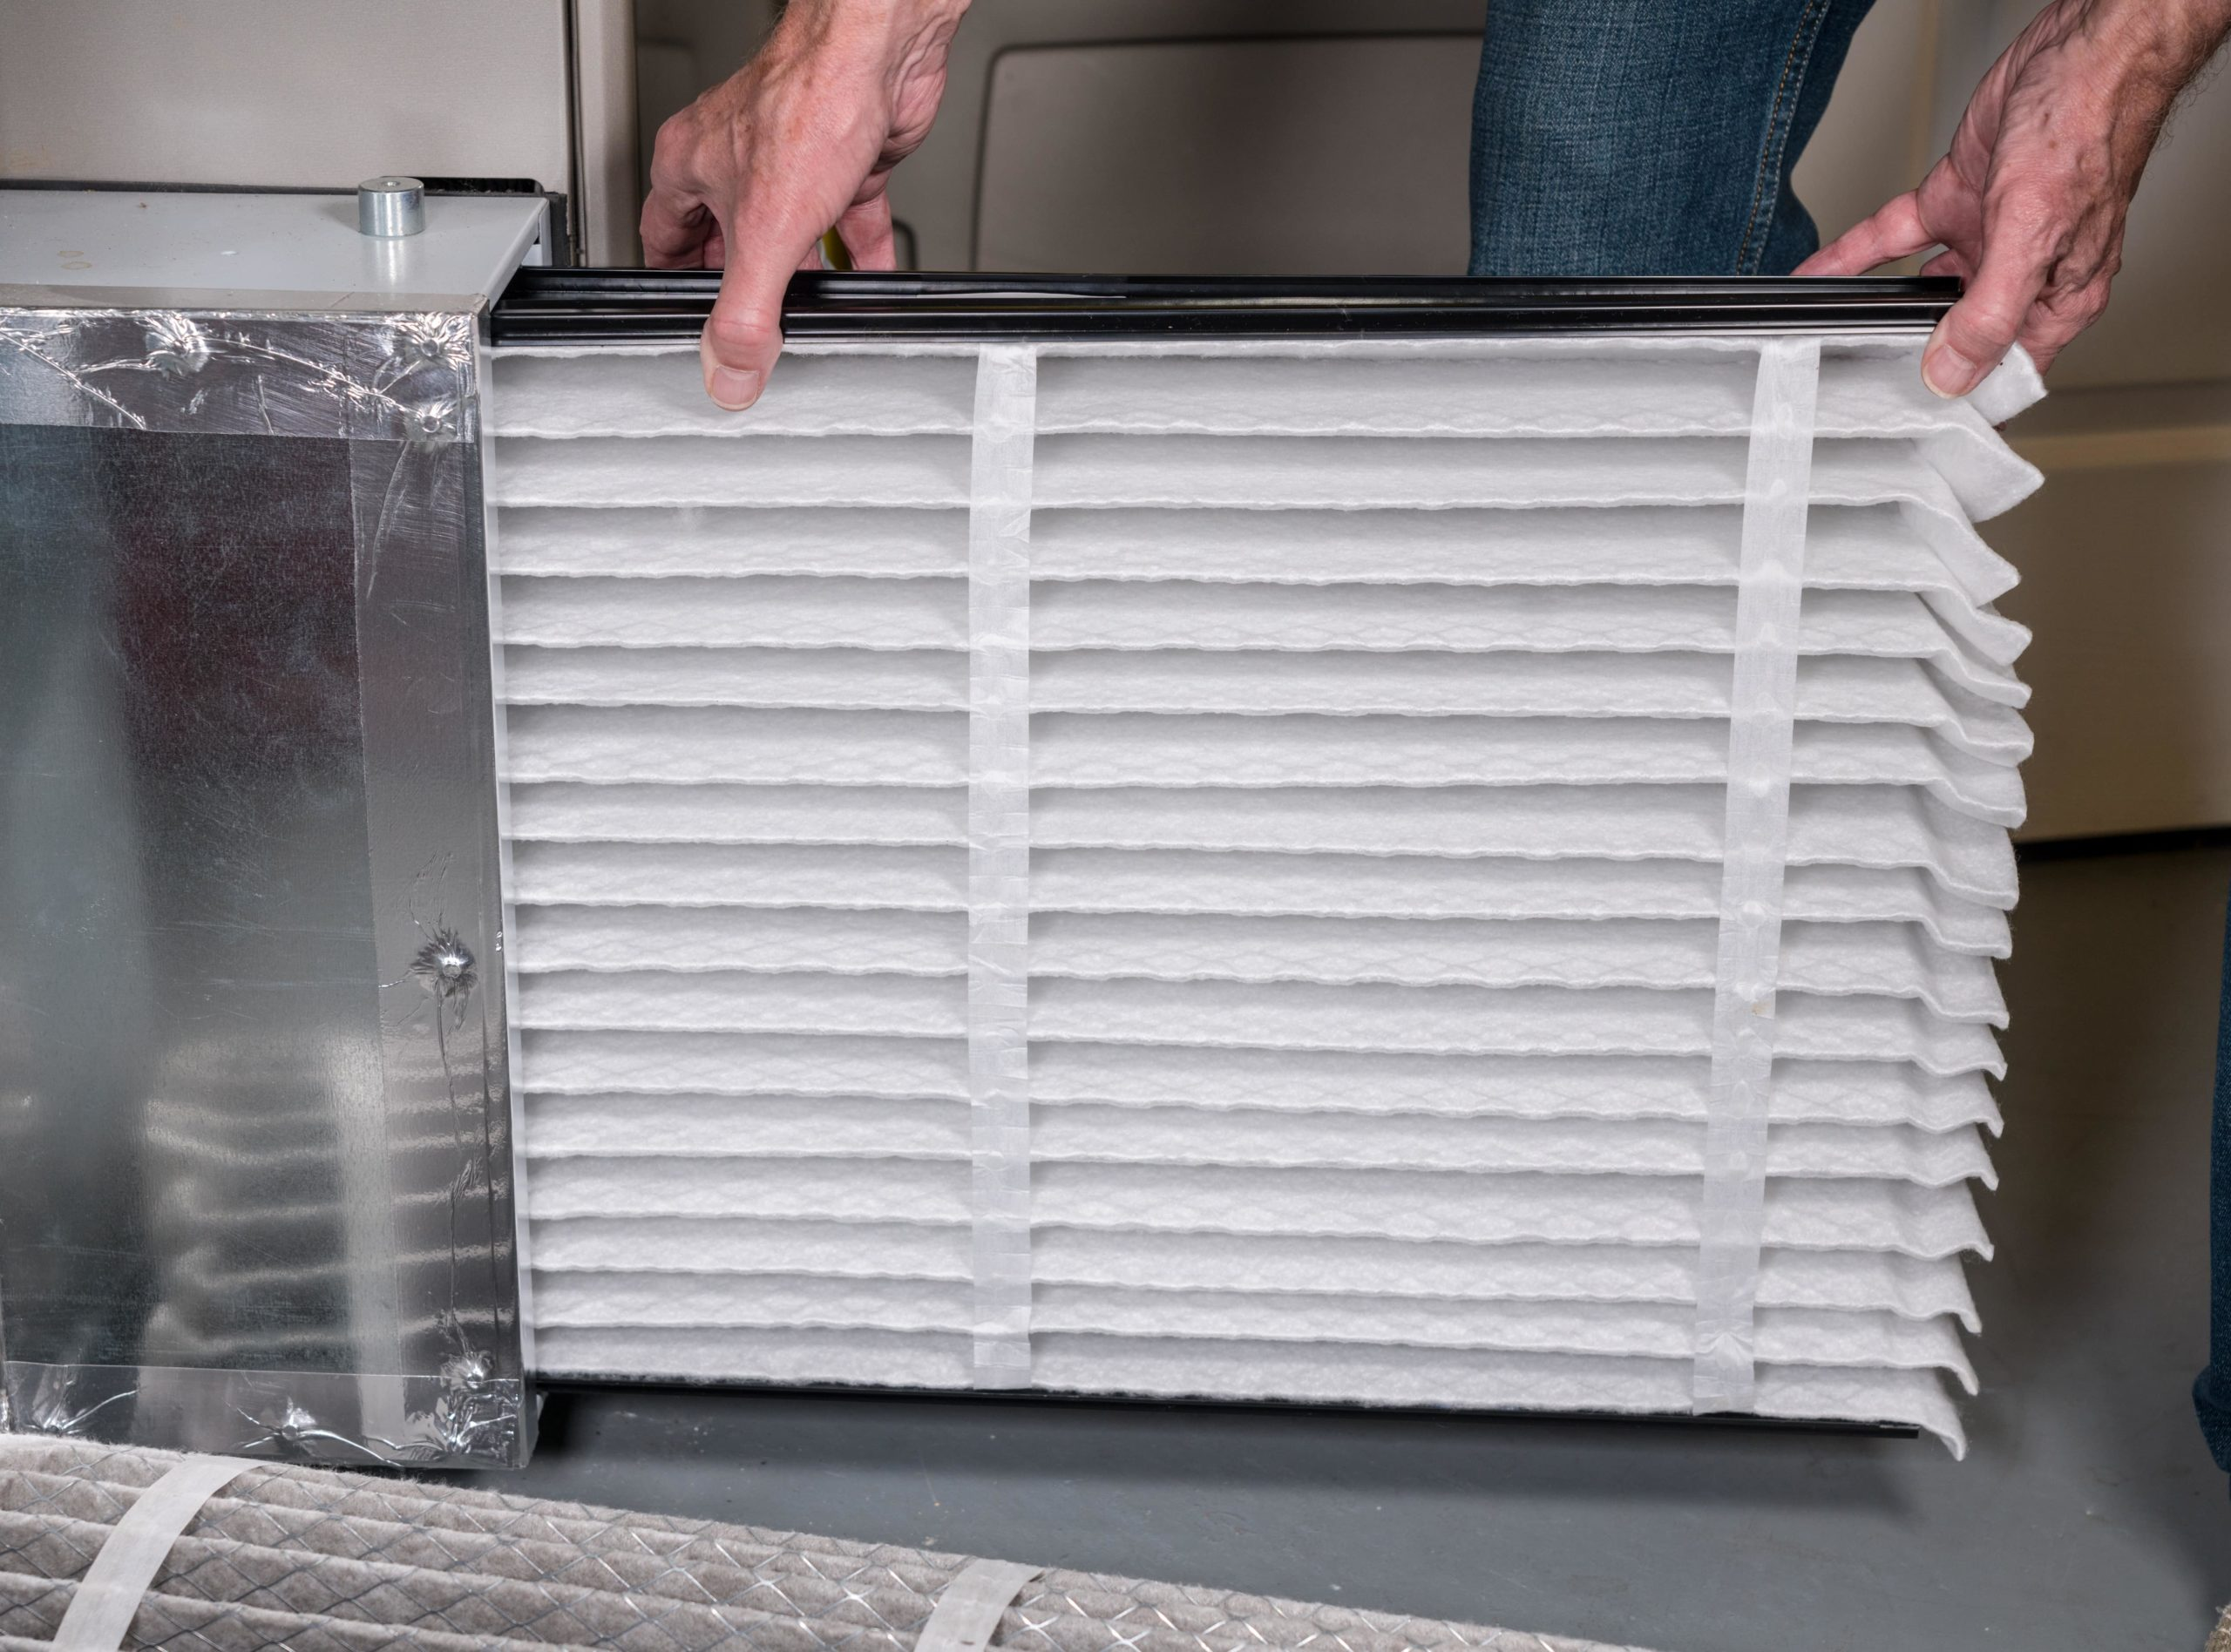 What are the signs of mold in HVAC air ducts?